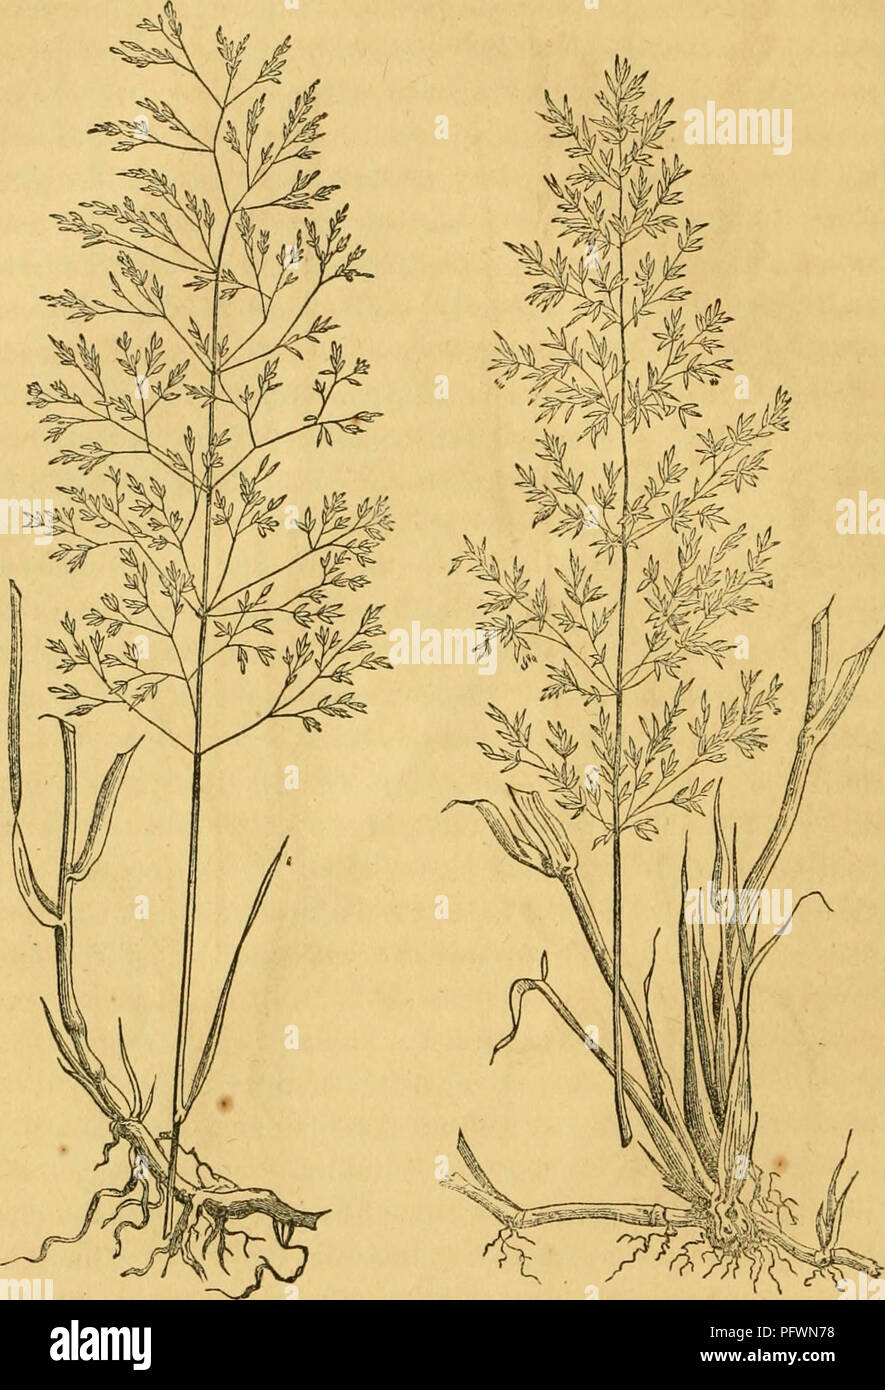 . Culture of the grasses. Grasses. CULTURE OP THE GRASSES.. Fig. 5. Rcdtop. Fig. 6. English Bent. New York and New England it is known by a great variety of names, and assumes a great variety of forms, according to the soil ill which it grows. It is well adapted to almost every soil, though it seems to prefer a moist loam. It makes a profitable crop for spending, in the form of hay, though its yield is less than that of Timothy. It is well suited to our permanent pastures, where it should be fed. Please note that these images are extracted from scanned page images that may have been digitally  Stock Photo